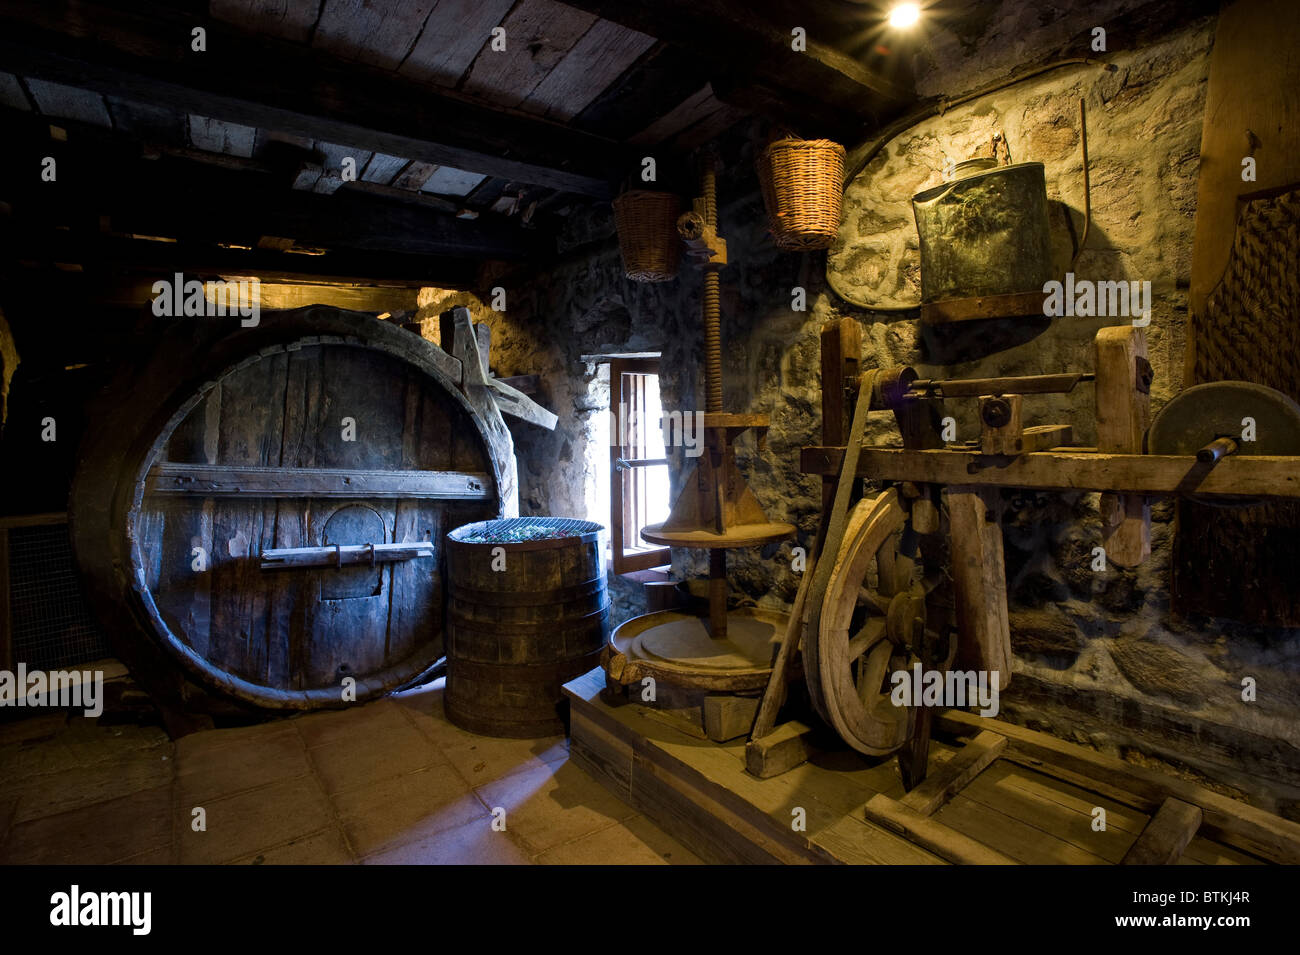 One of the museums in the Grand Meteoron monastery. - Stock Image